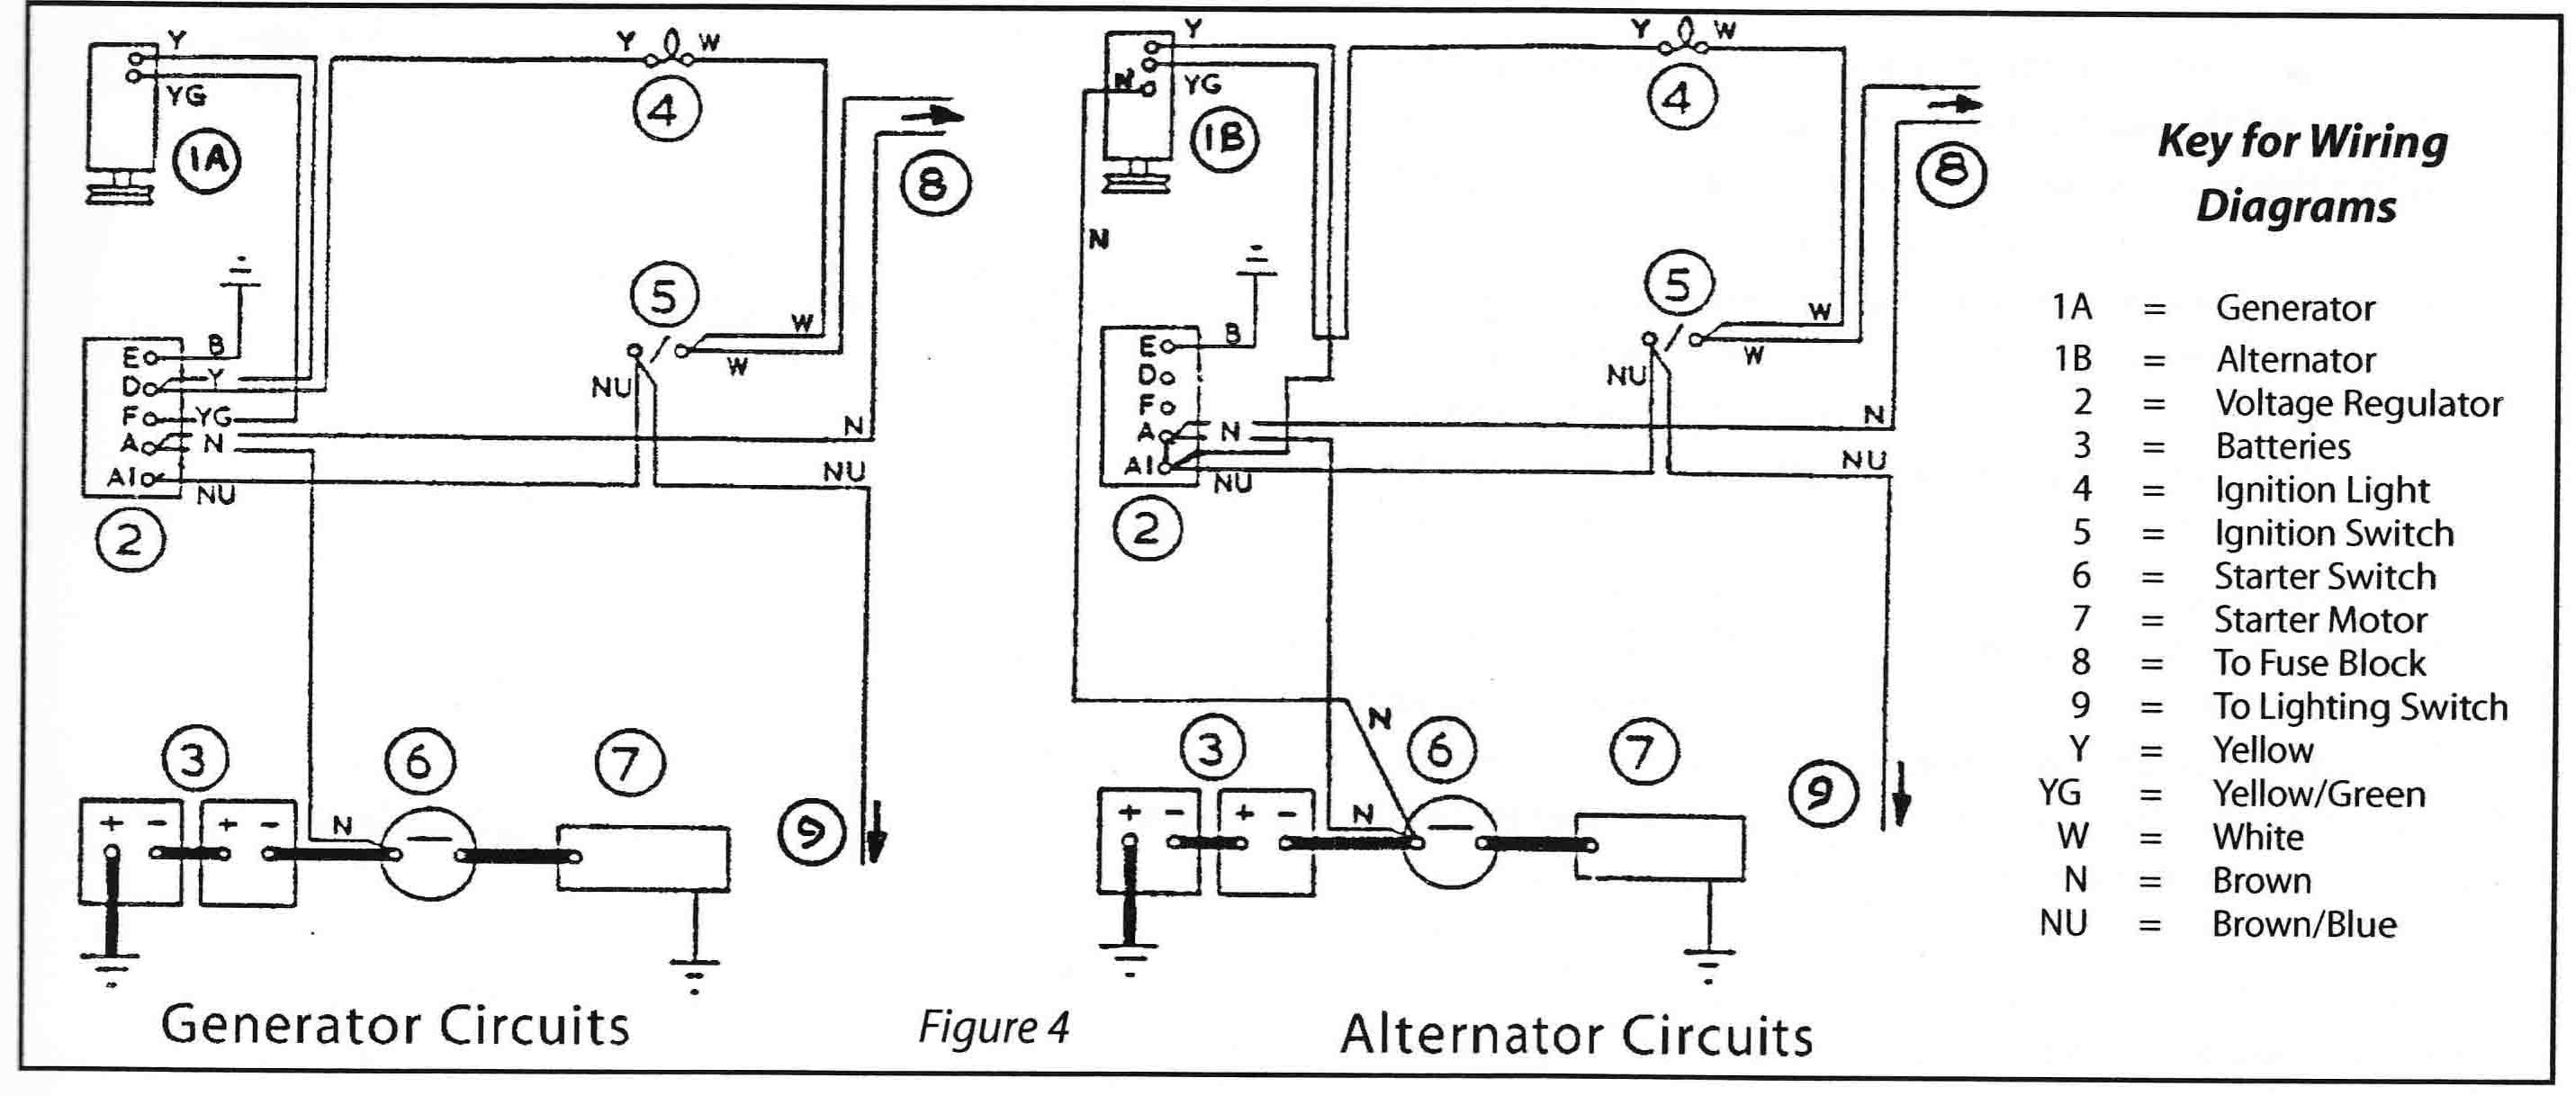 Wiring Diagram Replace Generator With Alternator